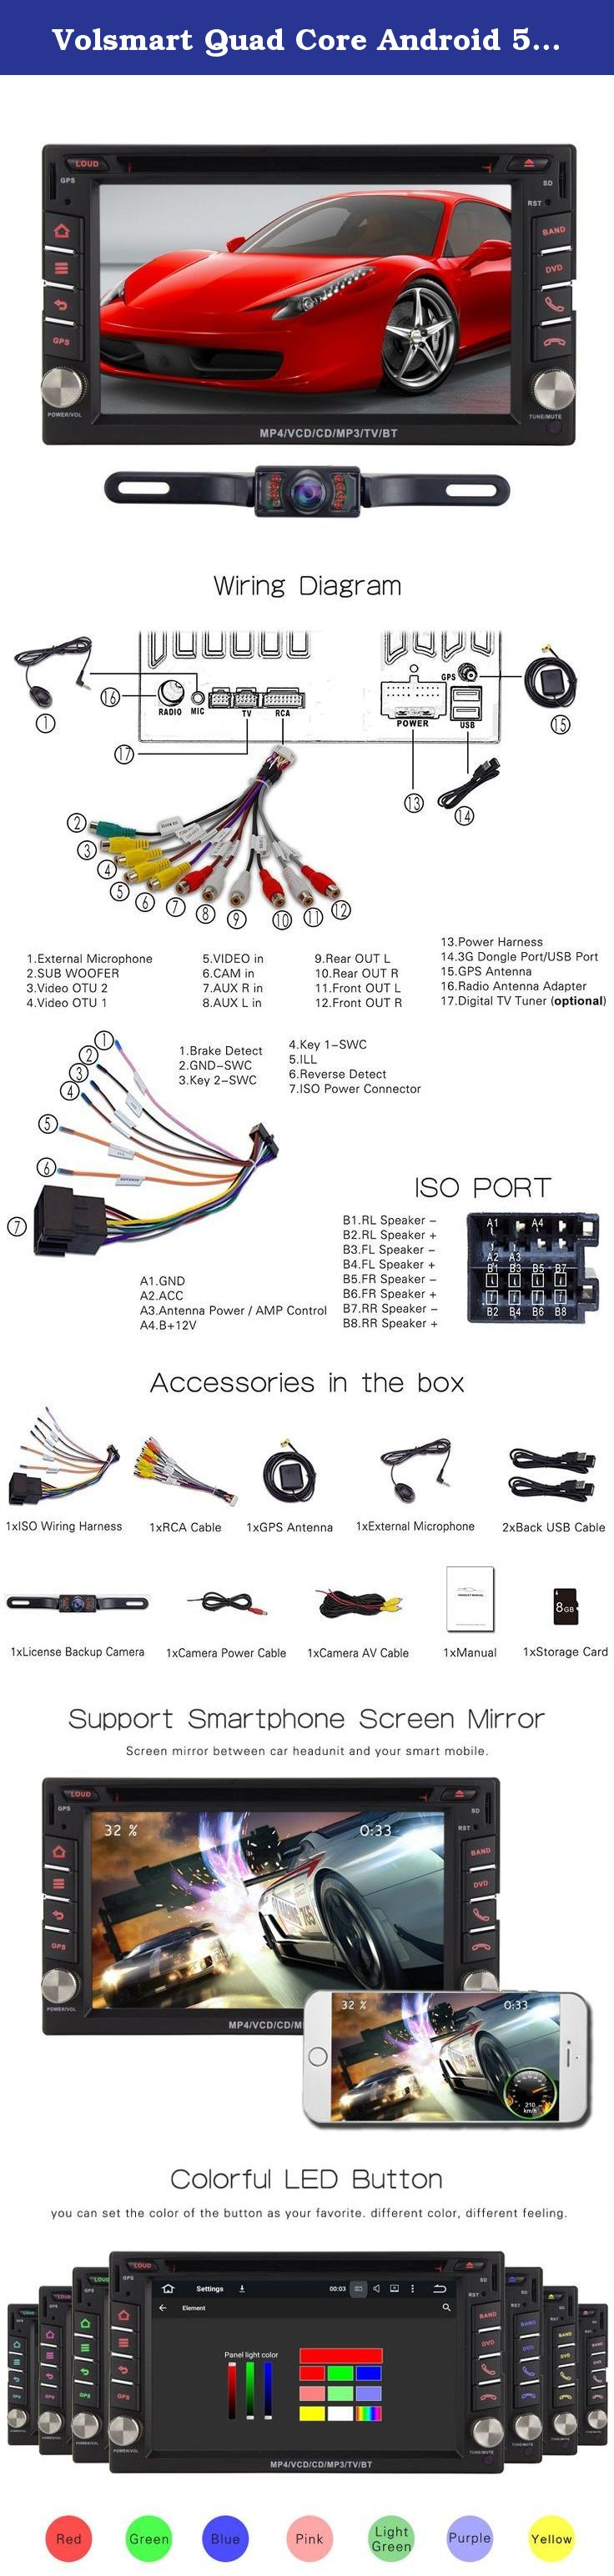 Dual Xdvd710 Wiring Diagram 27 Images Double Din B07a73654f5b9af920138bc98b765983 Sony Gs Series Xav712hd Video Receiver With 7 Inch Wvga